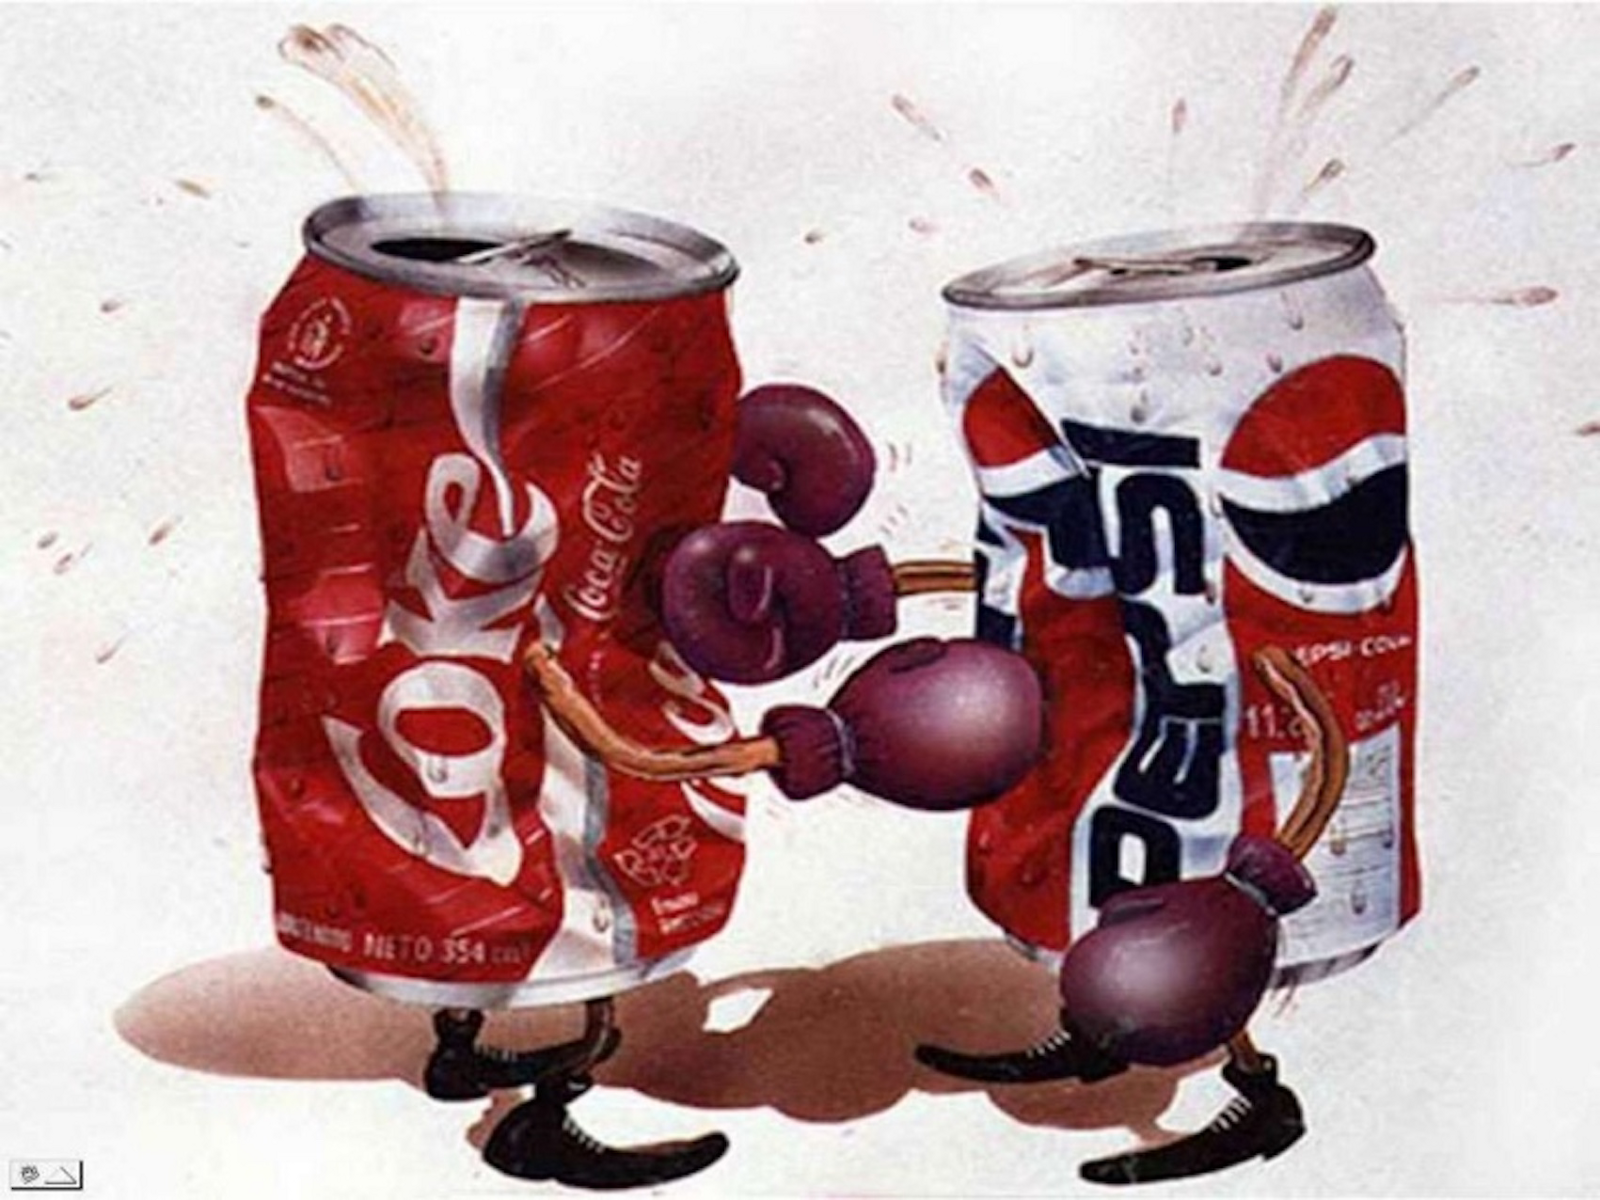 coke vs pepsi case study solution Educators can login to view a free inspection copy of this case cola wars continue: coke and pepsi in 2010 ref 9-711-462 teaching note ref 5-711-531.